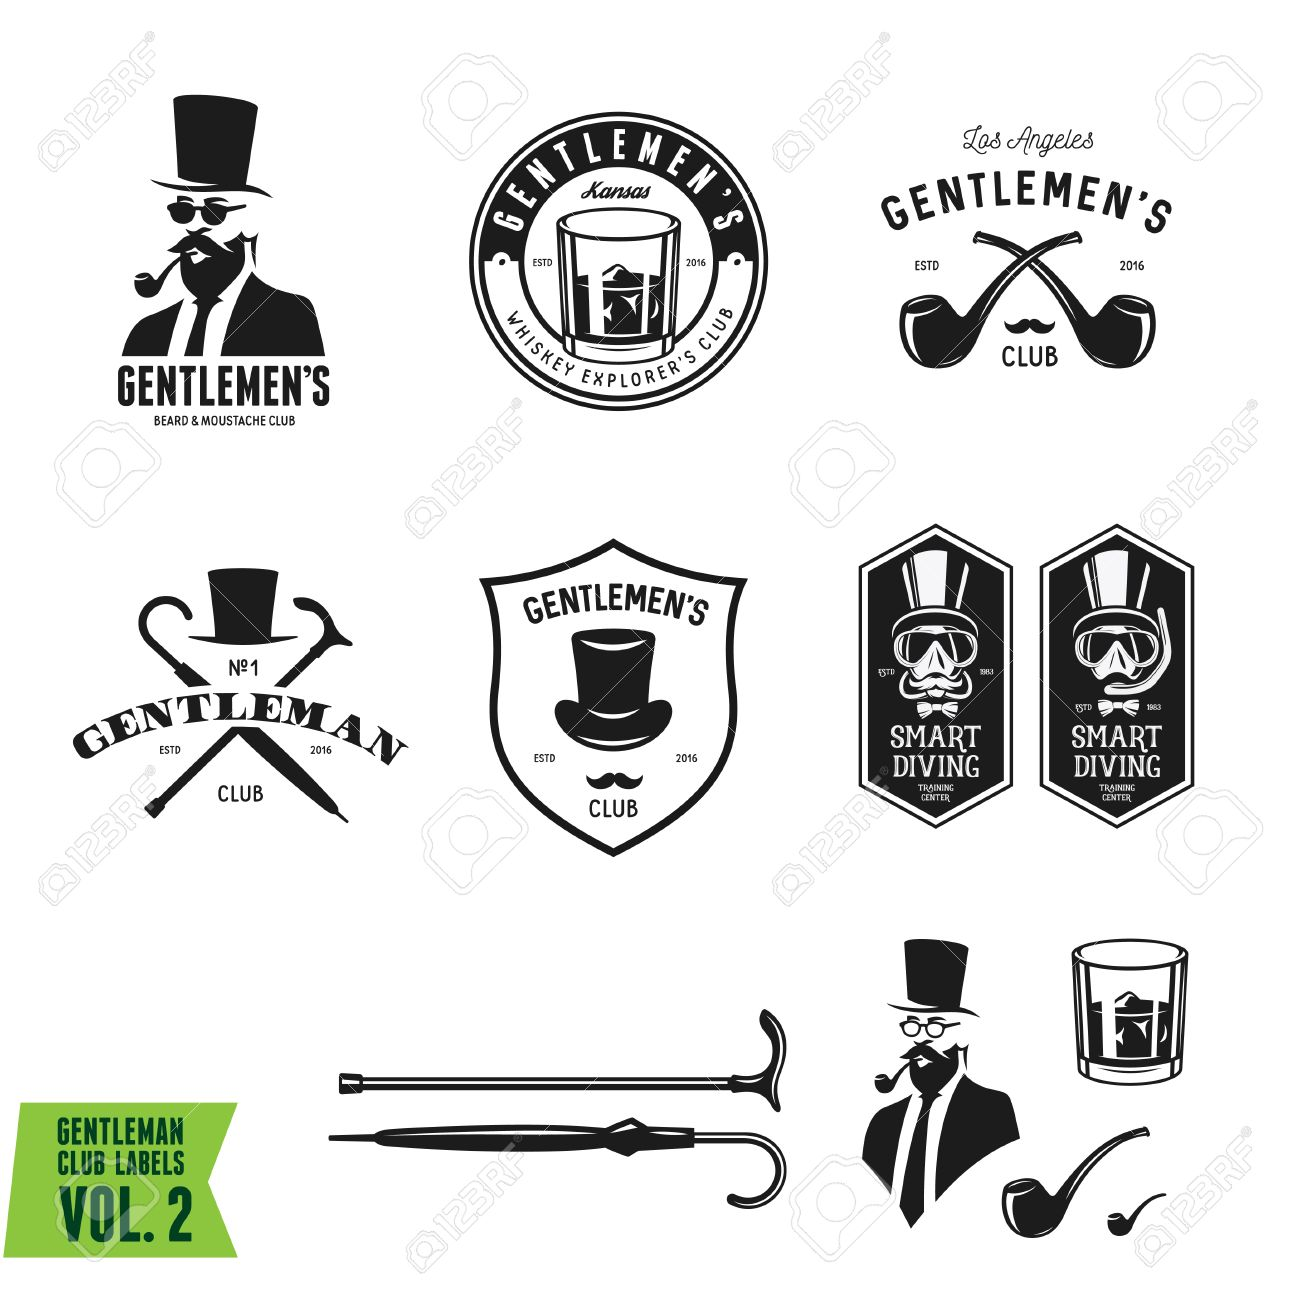 89a1a72bfbf139 Collection of vintage gentleman emblems, labels, badges and design elements.  Monochrome style.